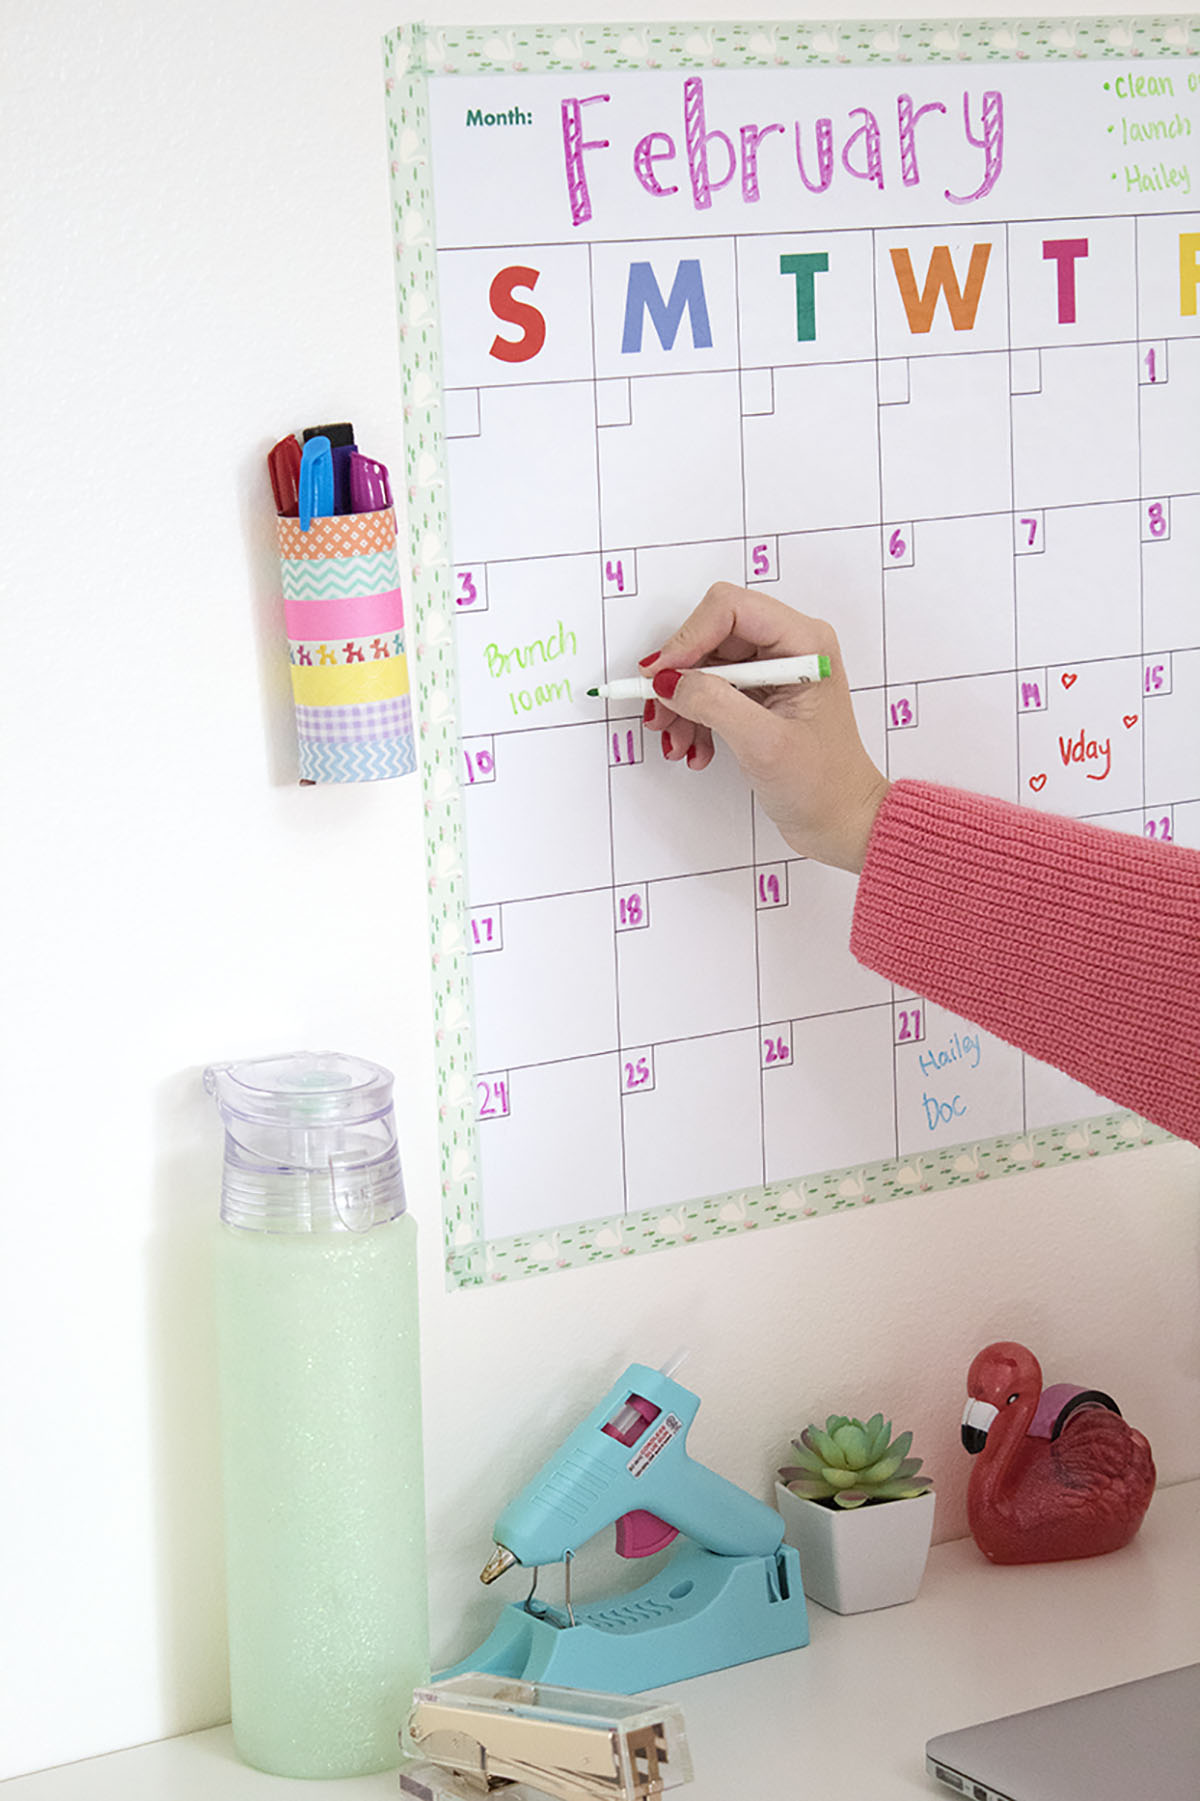 If your new year's resolution is to get organized, I've got something special for you! This DIY paper tube pen cup goes perfectly wth a dry erase calendar to get you on the right foot! It's perfect for repurposing a toilet paper roll, and it's an easy DIY you can do with washi tape! Click for the full DIY #toiletpapertubecrafts #washitape #organization #dryerasecalendar